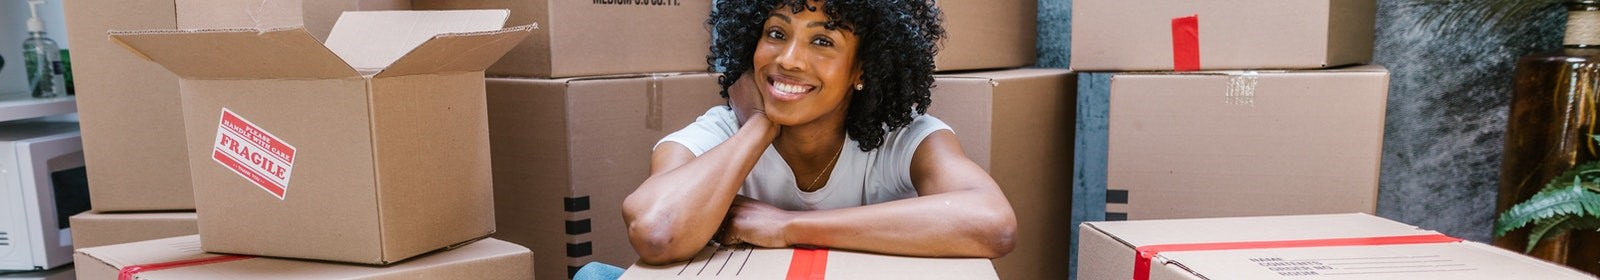 7 Places to get free moving boxes South Africa